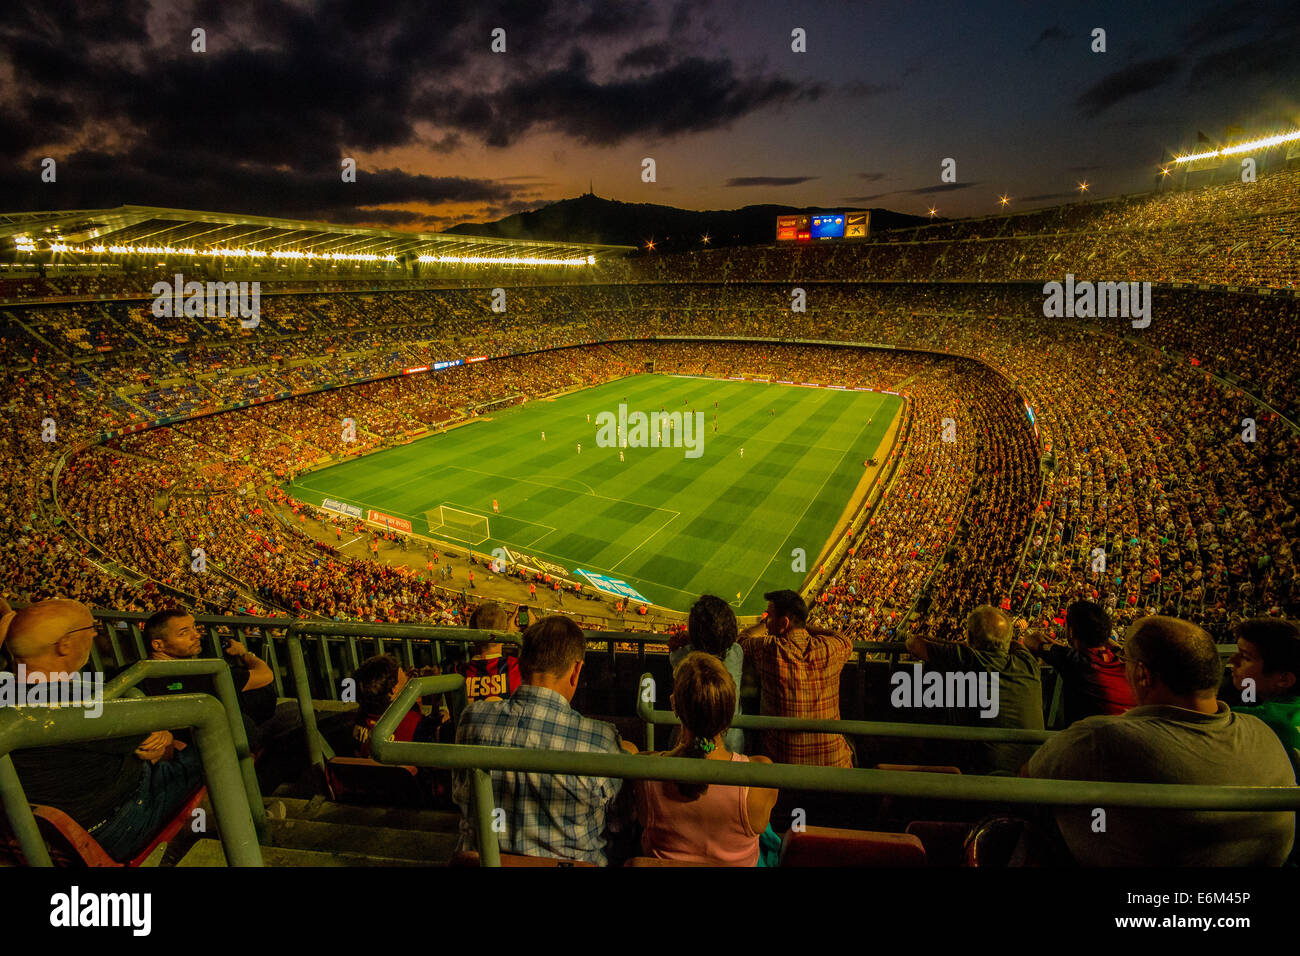 View of the Camp Nou on matchday for Barcelona v Elche 24/08/2014 in which the game finished Barcelona 3 - 0 Elche Stock Photo